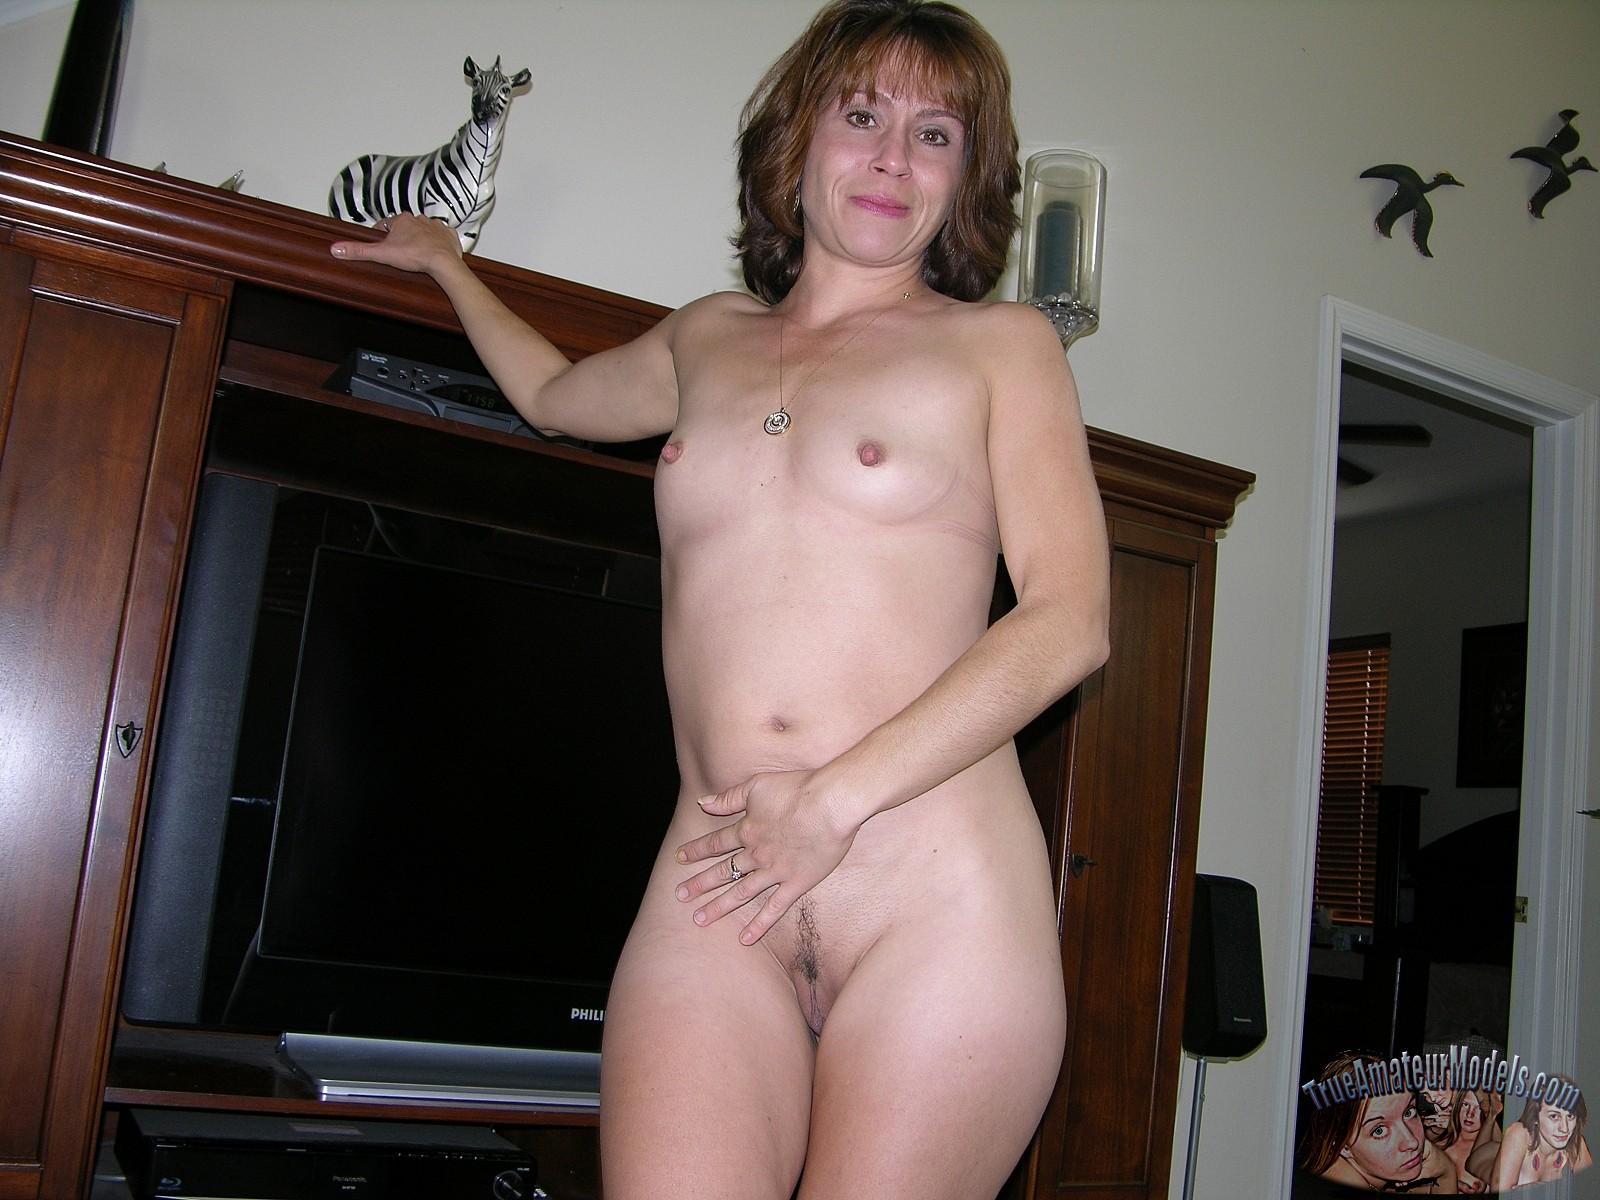 Wife nude modeling pictures